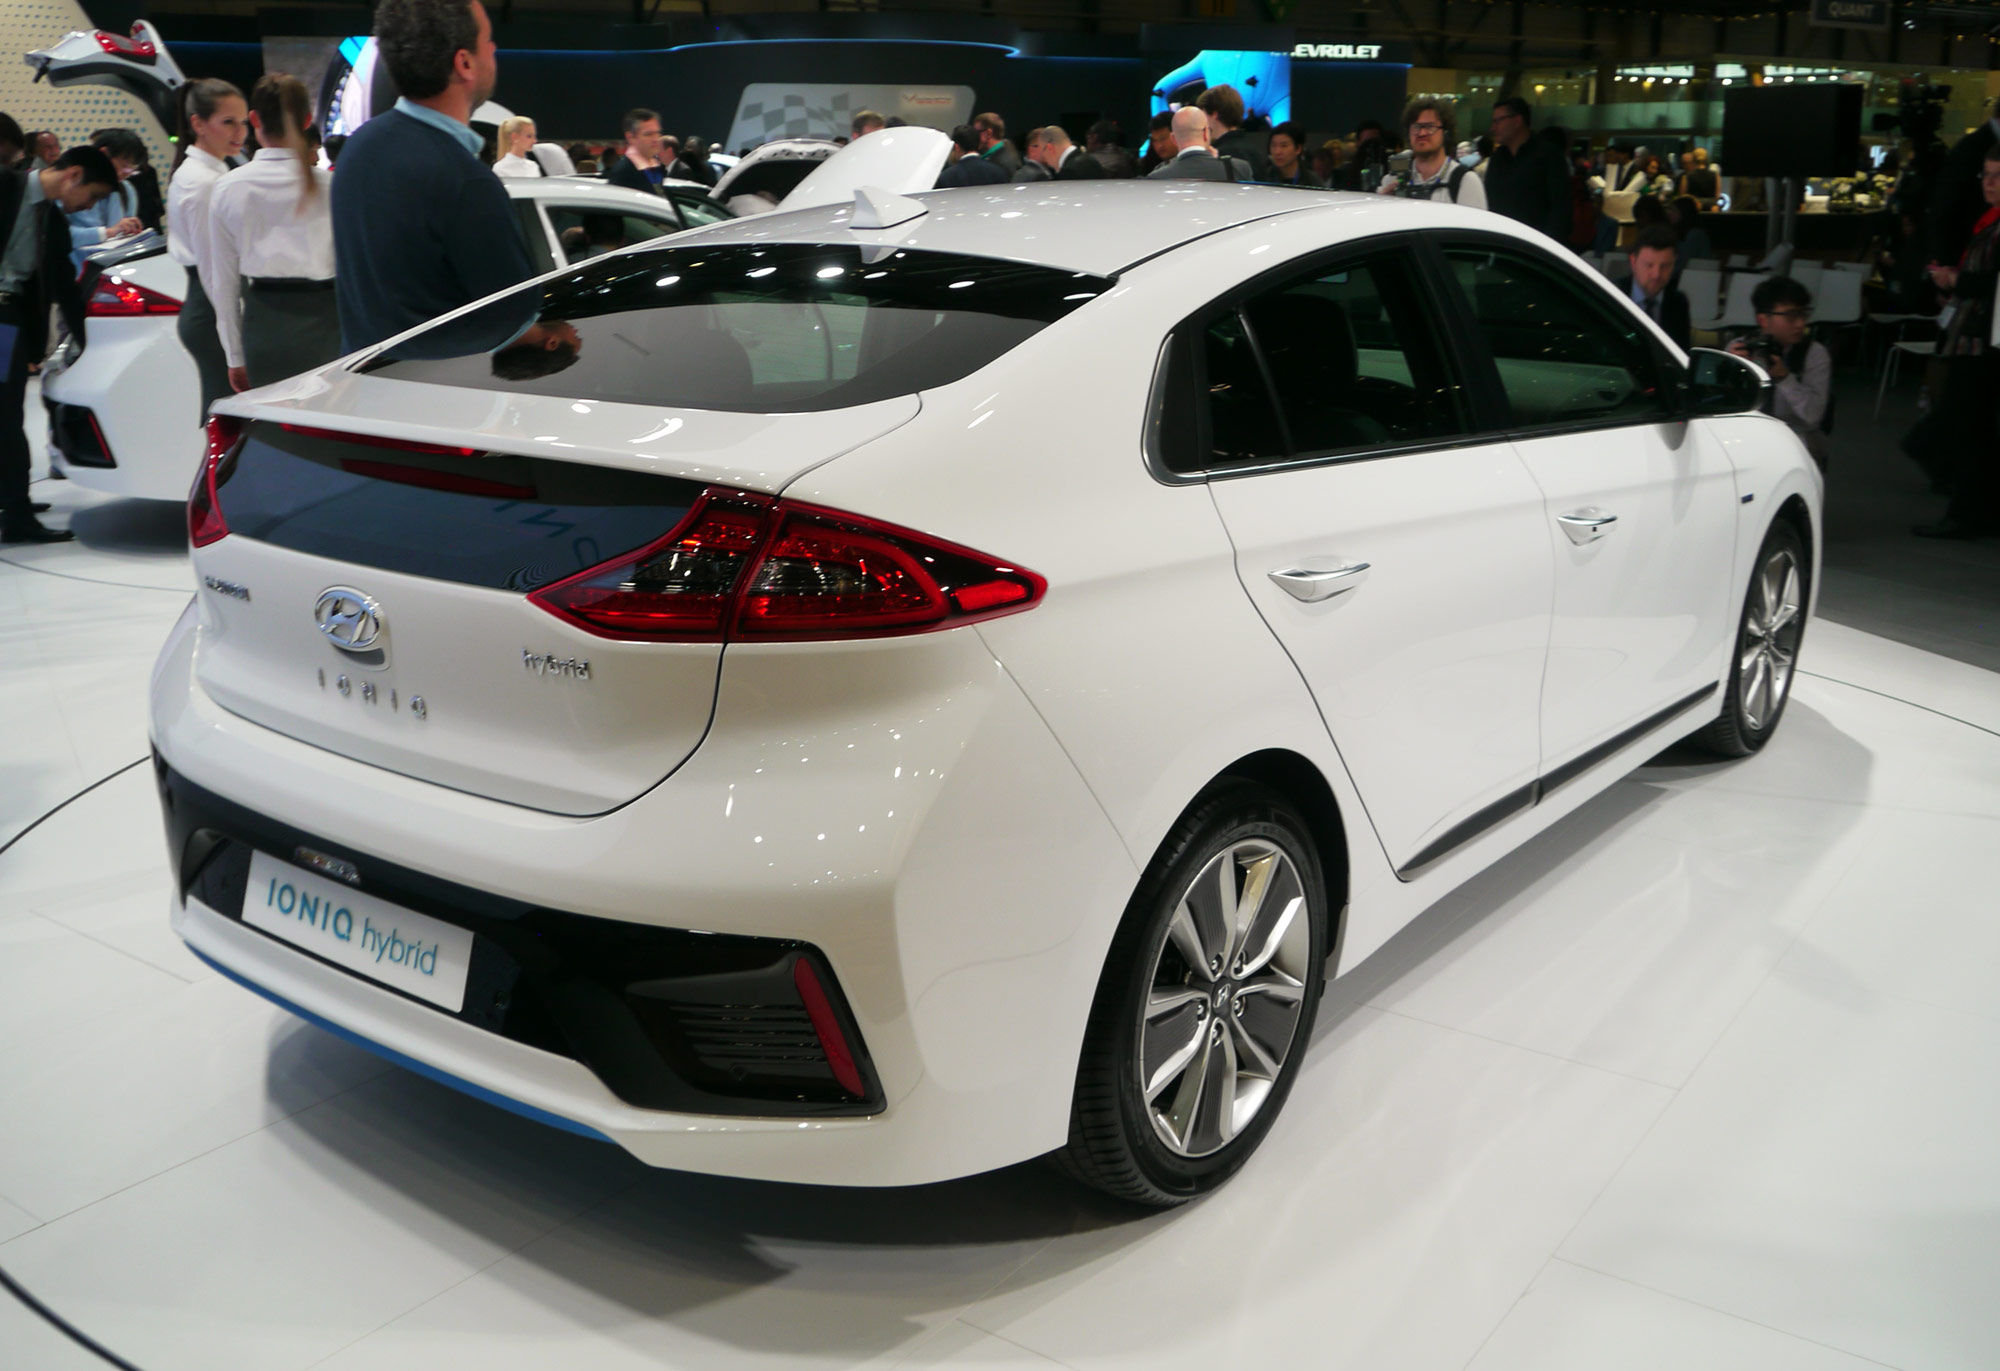 hyundai ioniq hybrid showcased at auto china 2016 pakwheels blog. Black Bedroom Furniture Sets. Home Design Ideas